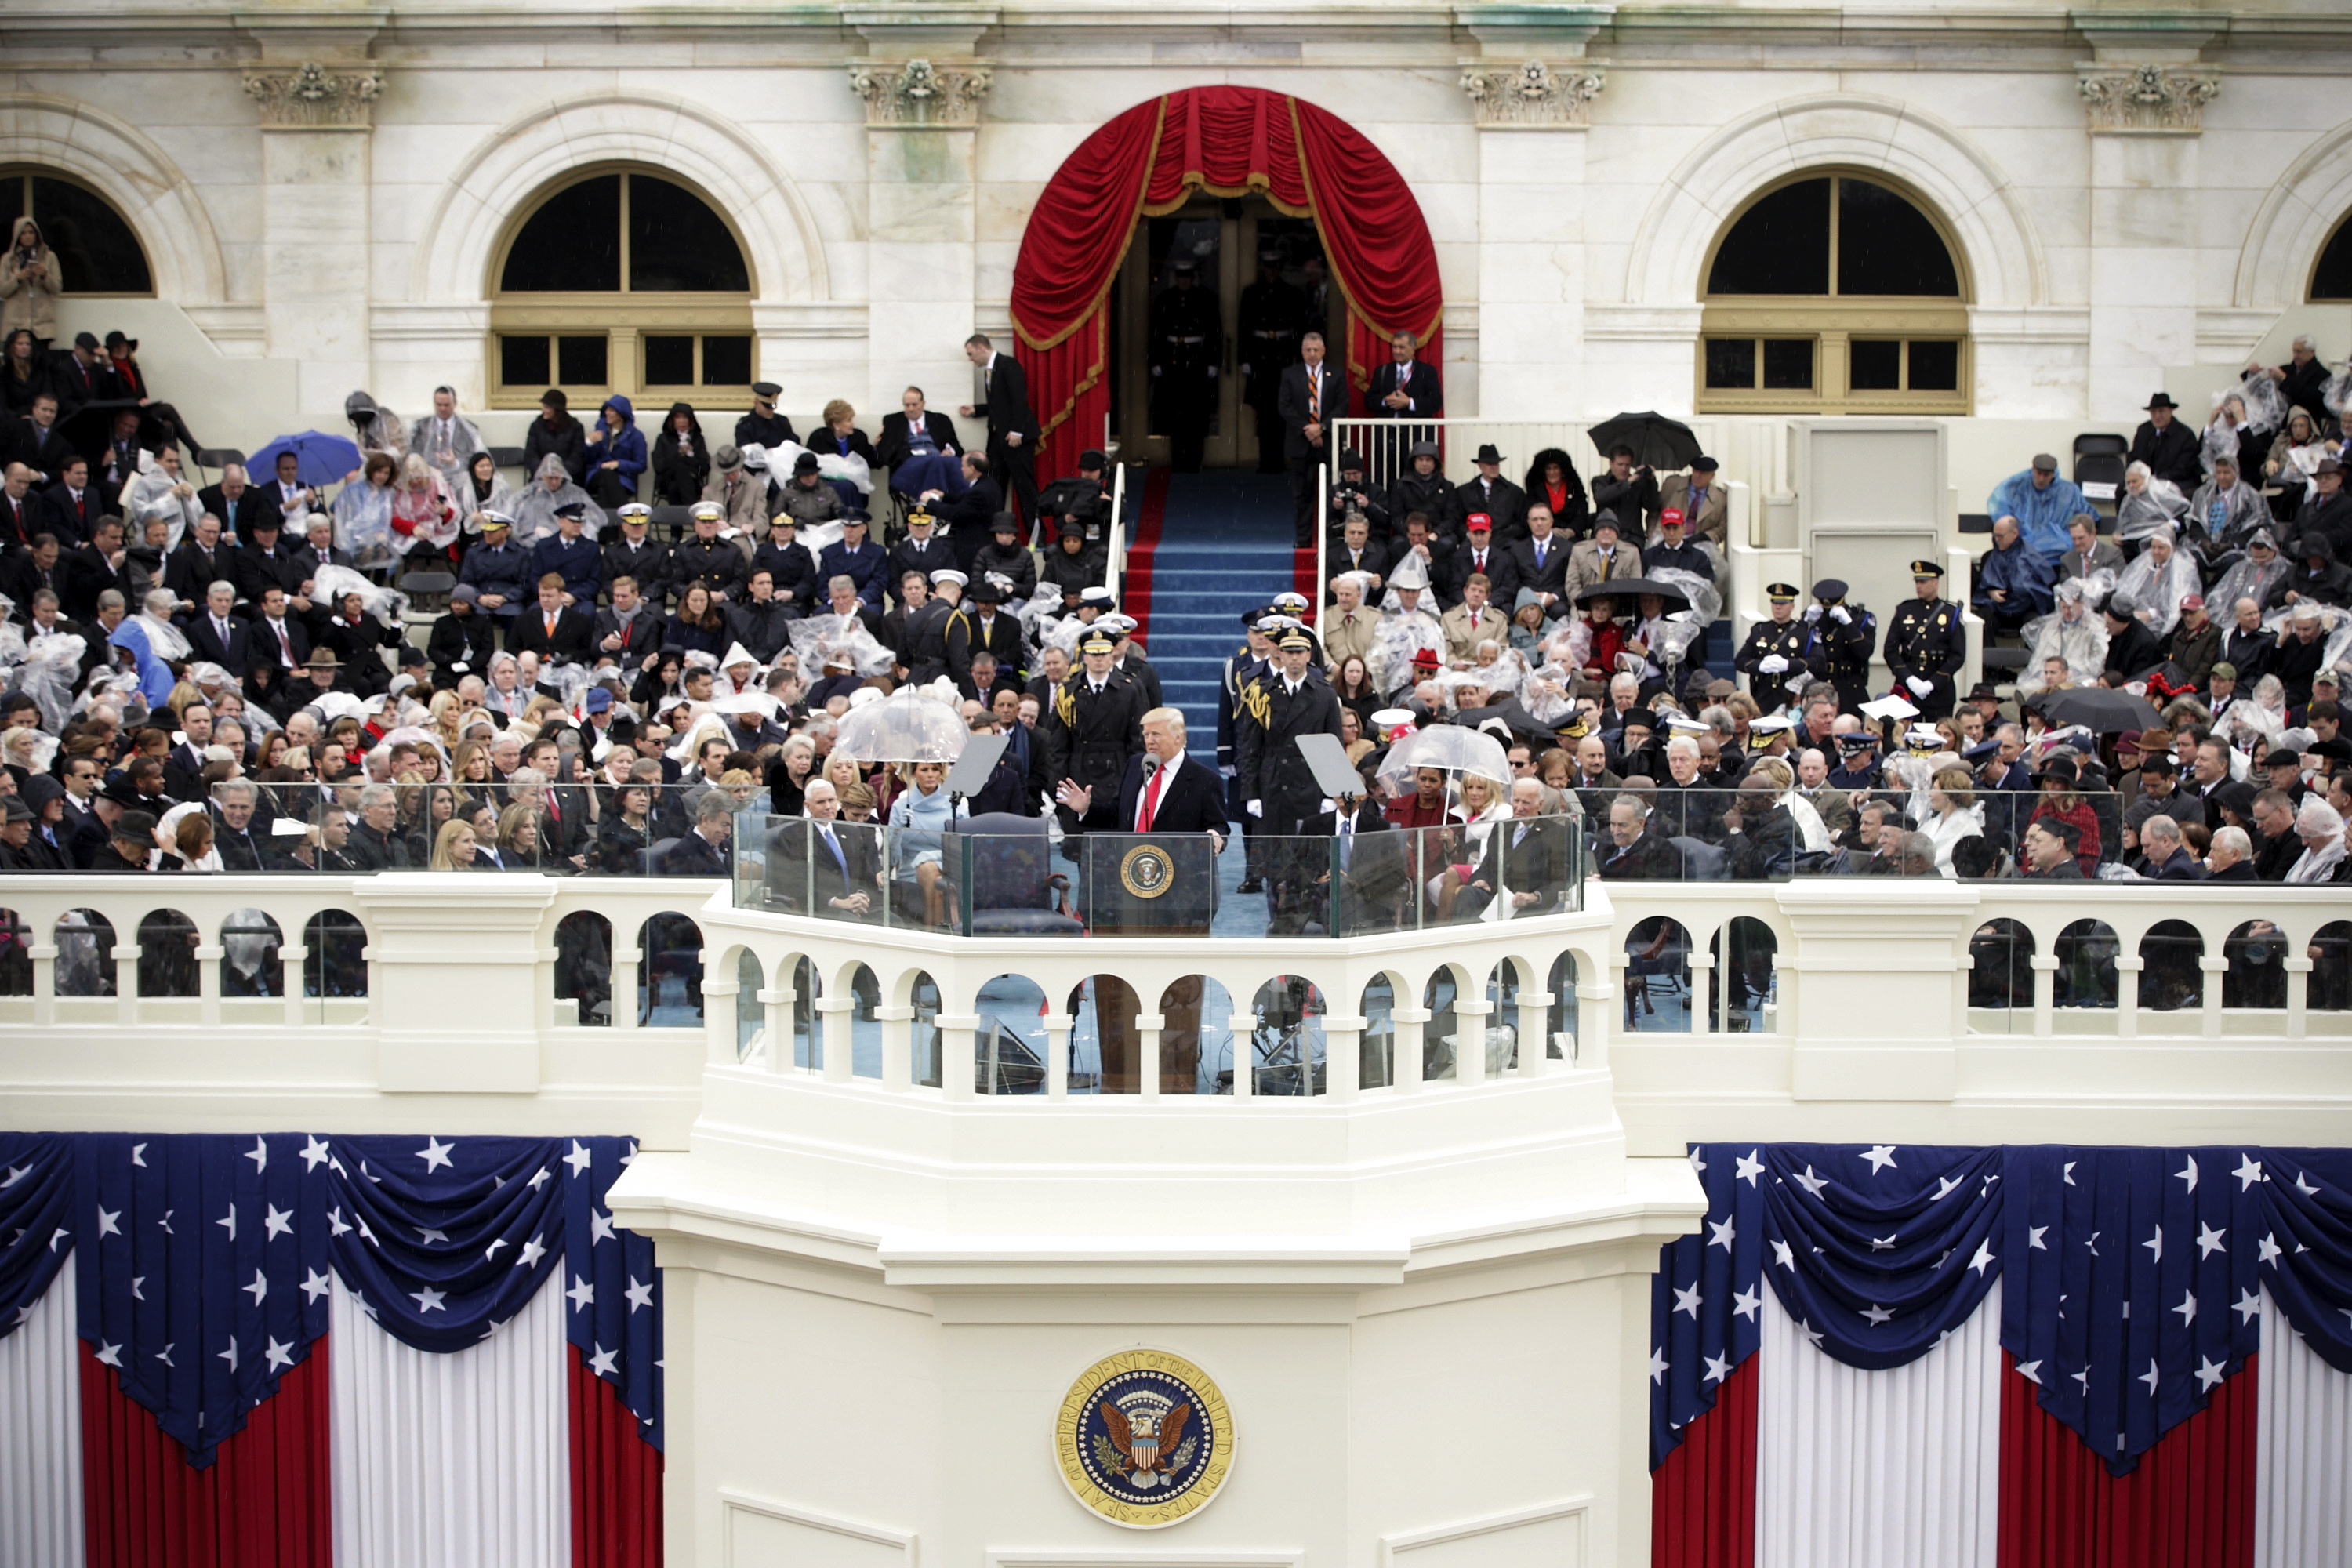 Trump could have reached out in his inaugural address. Instead, he spoke to his loyalists.